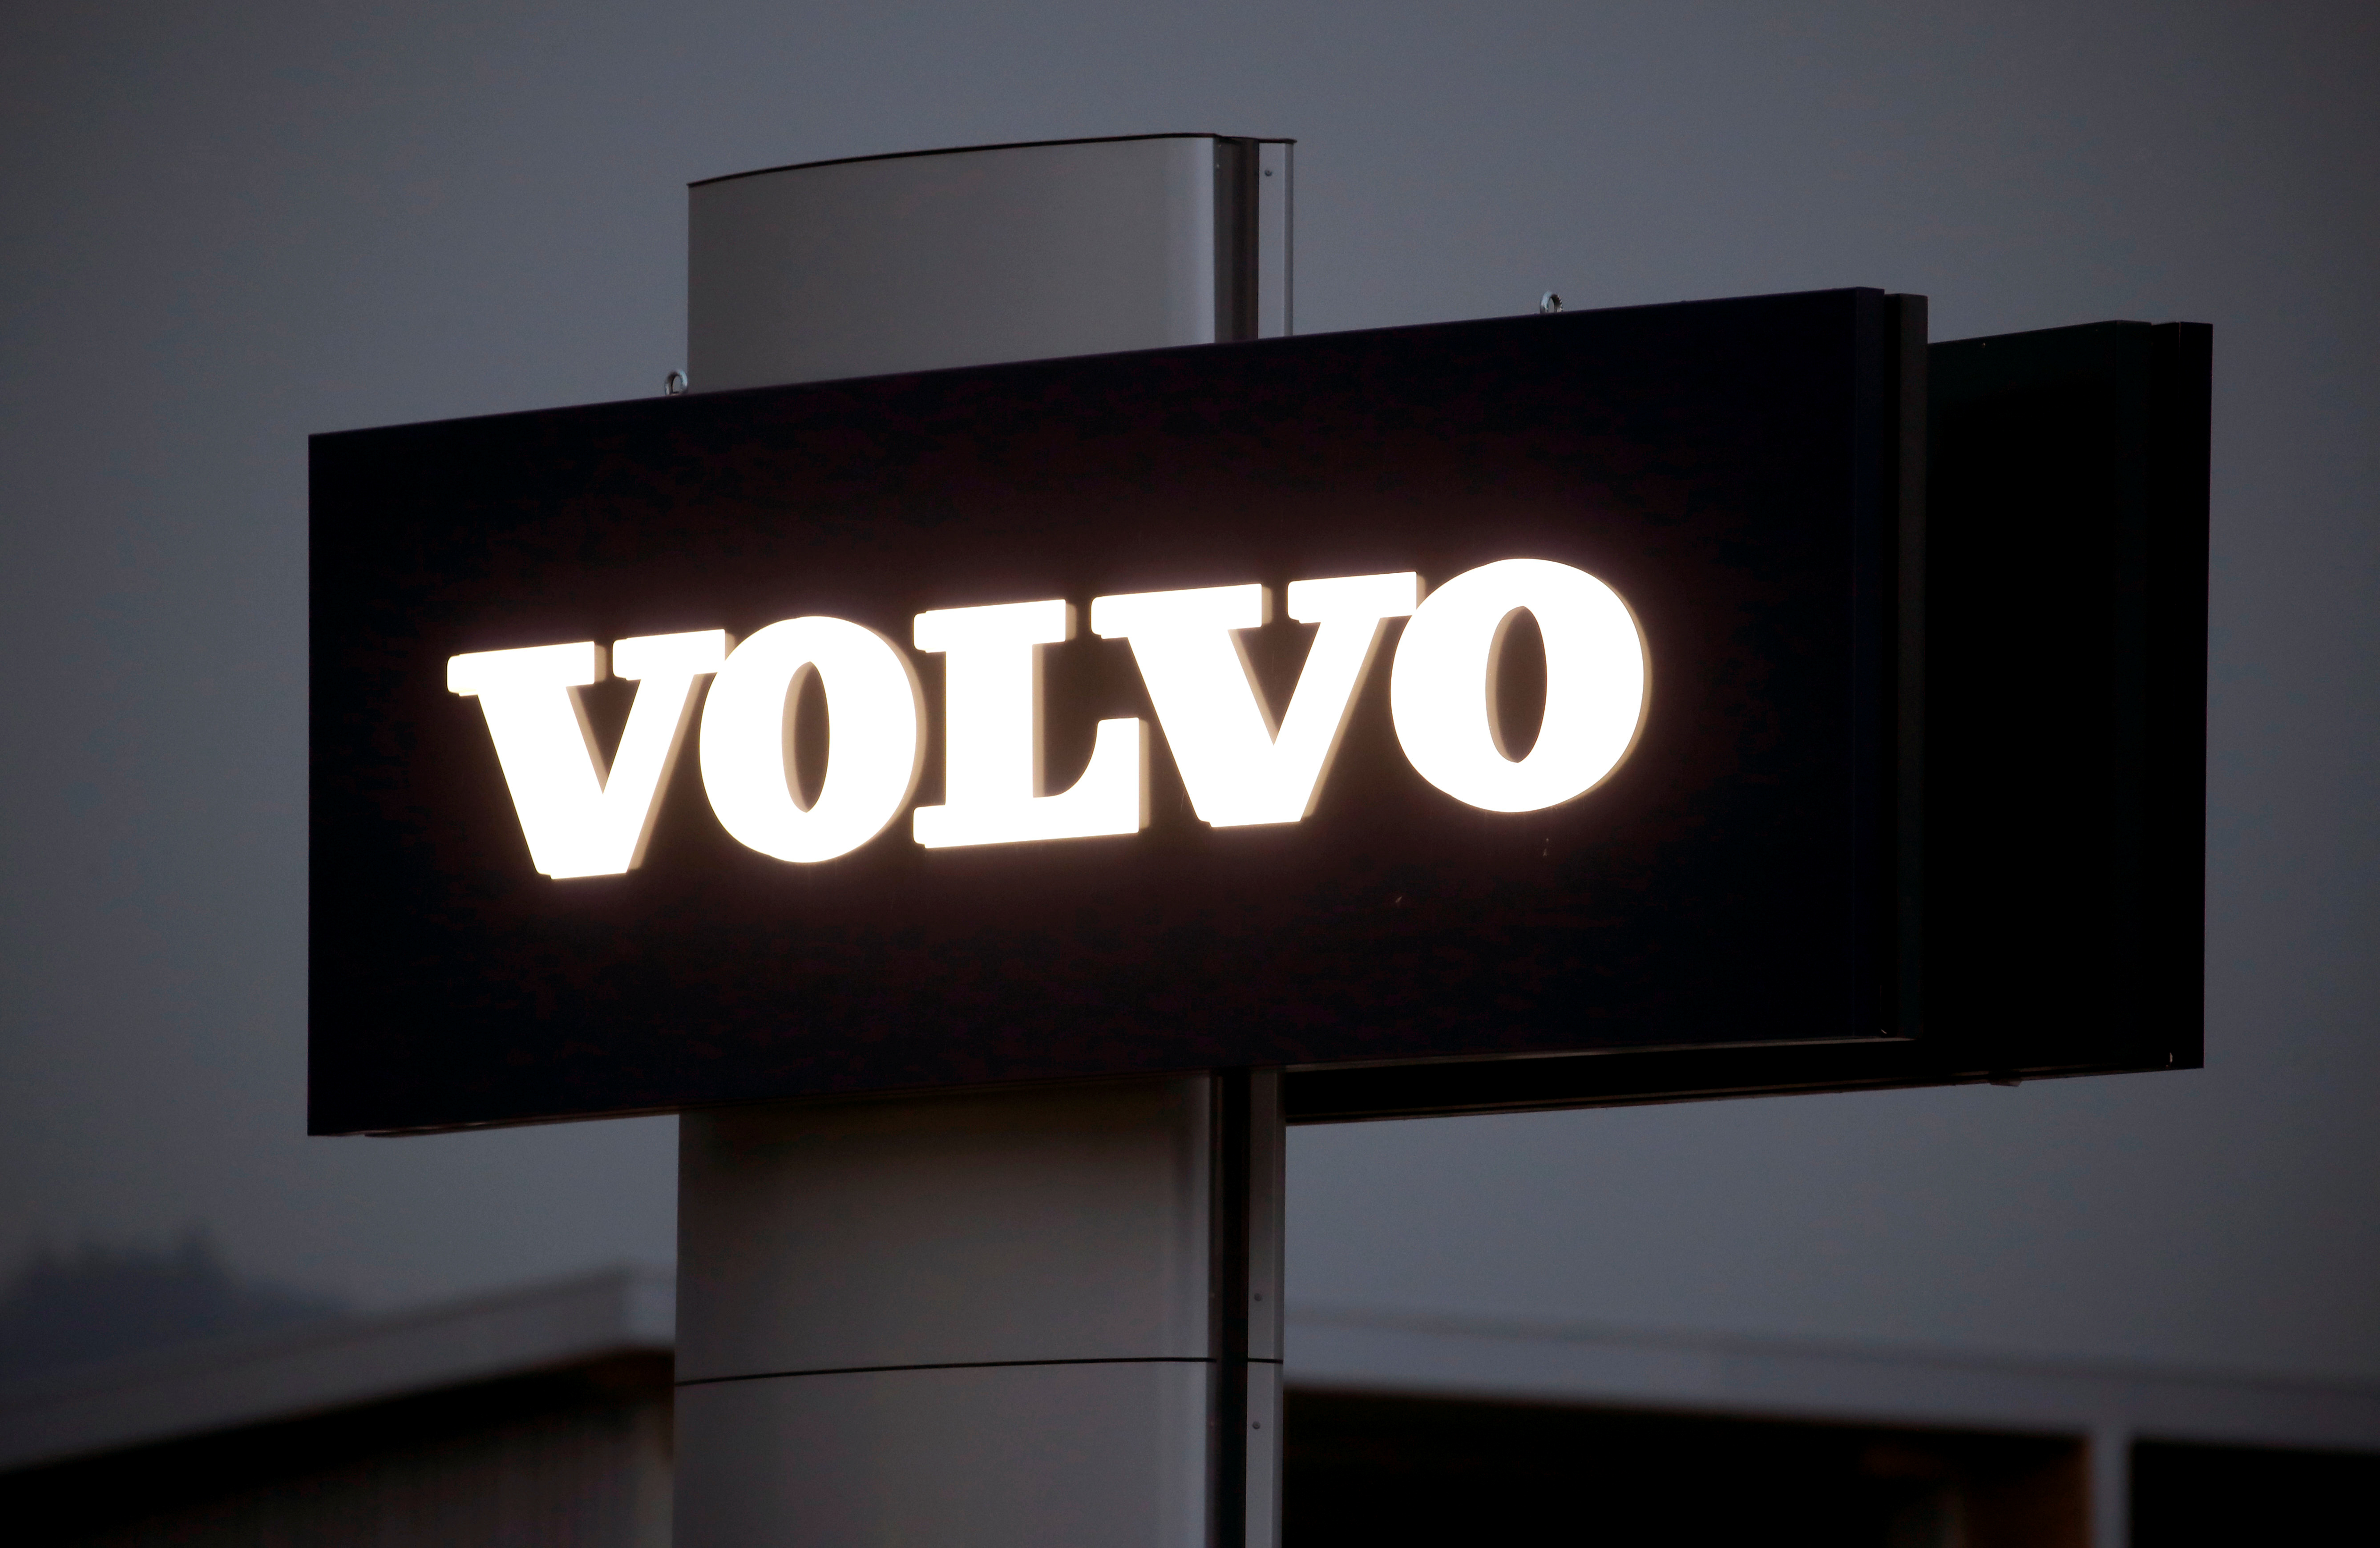 The logo of Swedish automobile manufacturer Volvo is seen at Stierli Automobile AG company in St. Erhard, Switzerland April 11, 2019.  REUTERS/Arnd Wiegmann/Files